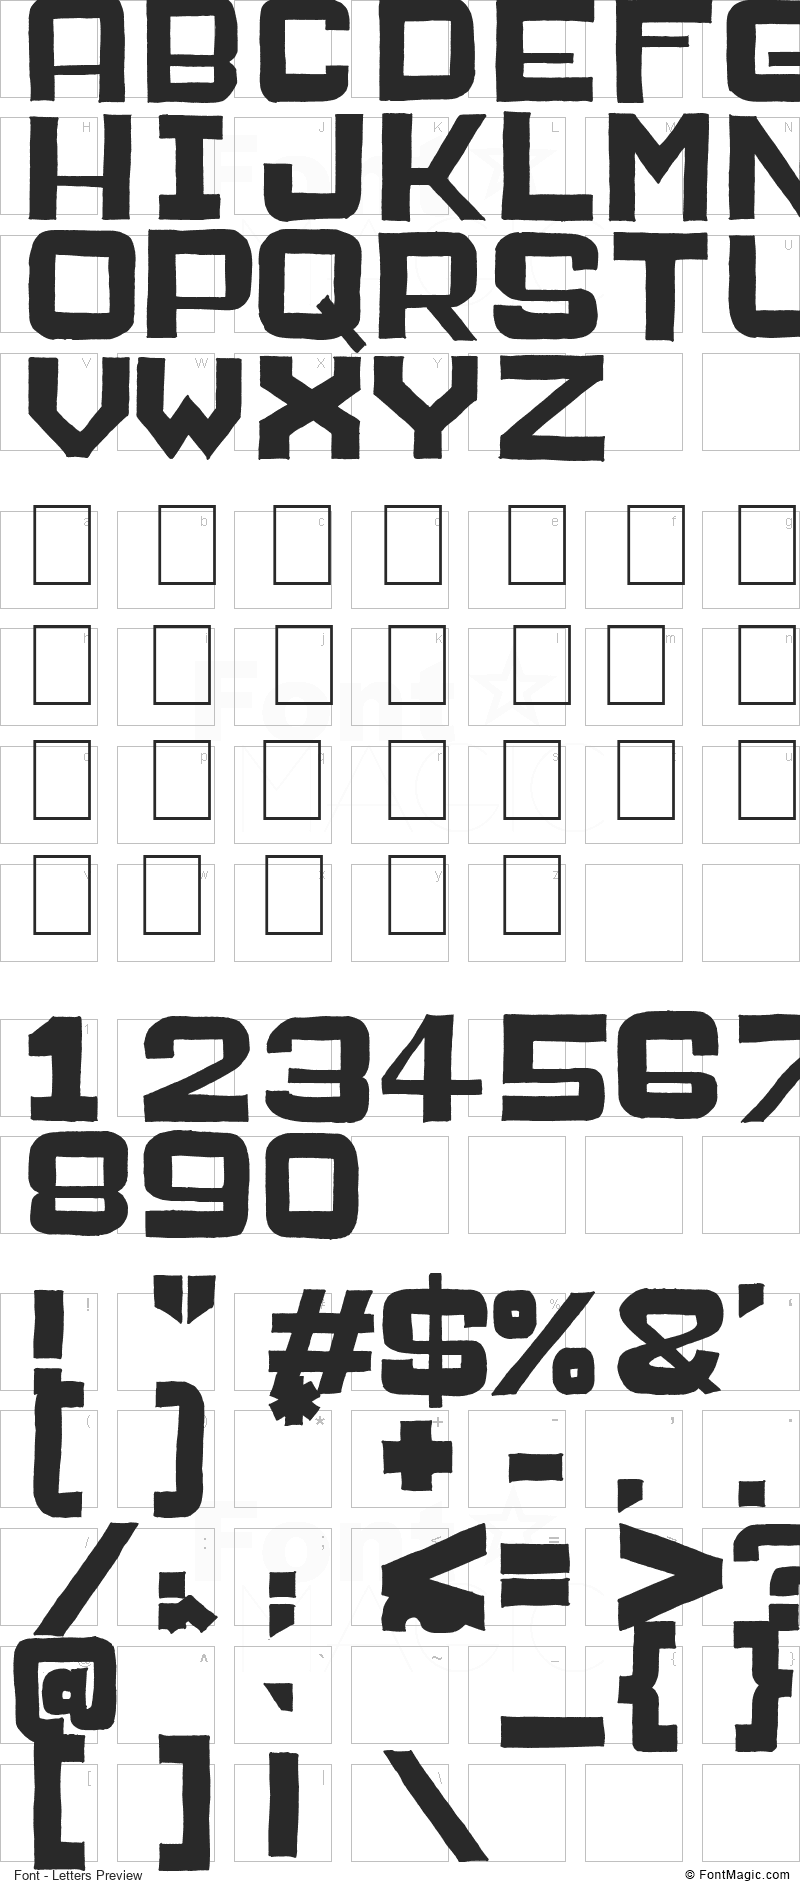 Public Market Font - All Latters Preview Chart